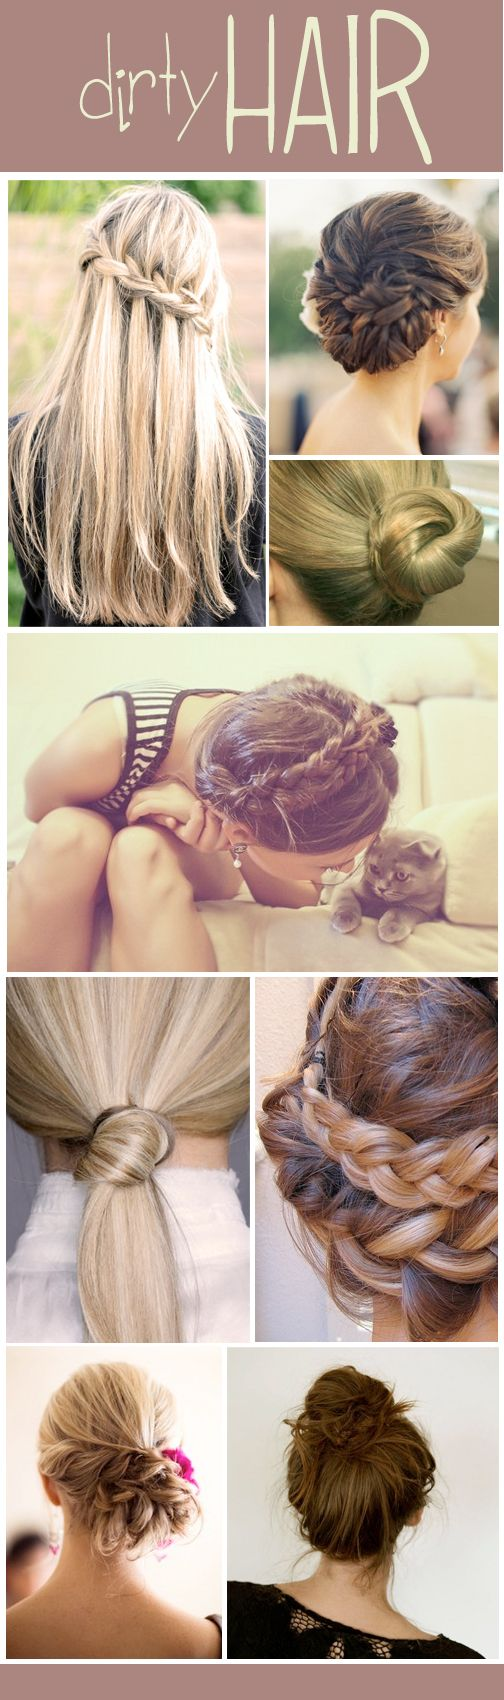 hairstyles in a hurry ★